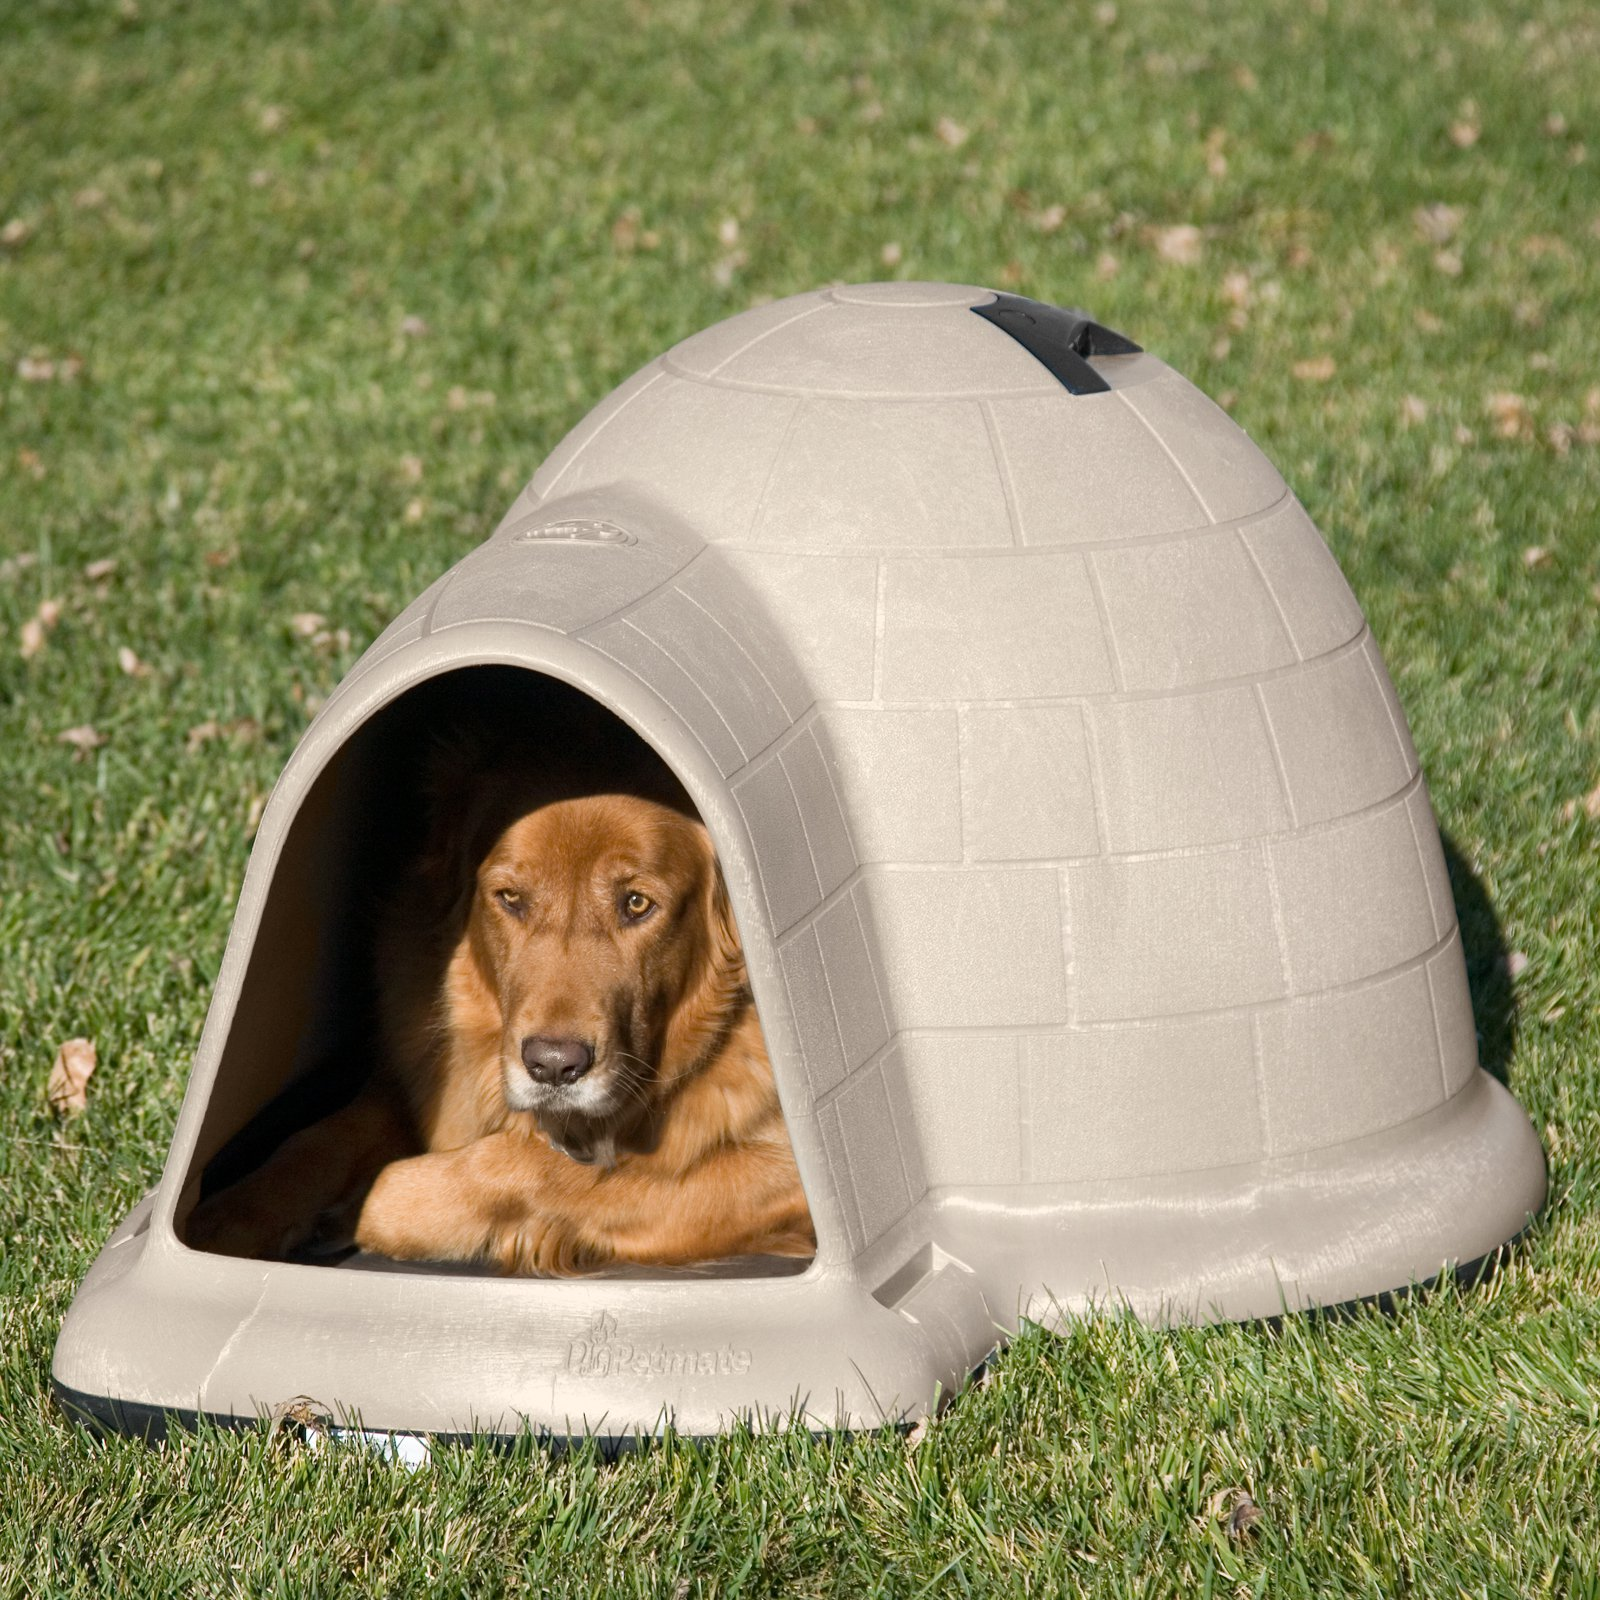 Petmate Indigo Dog house W Microban, 50-90Lbs by Doskocil Manufacturing Co Inc